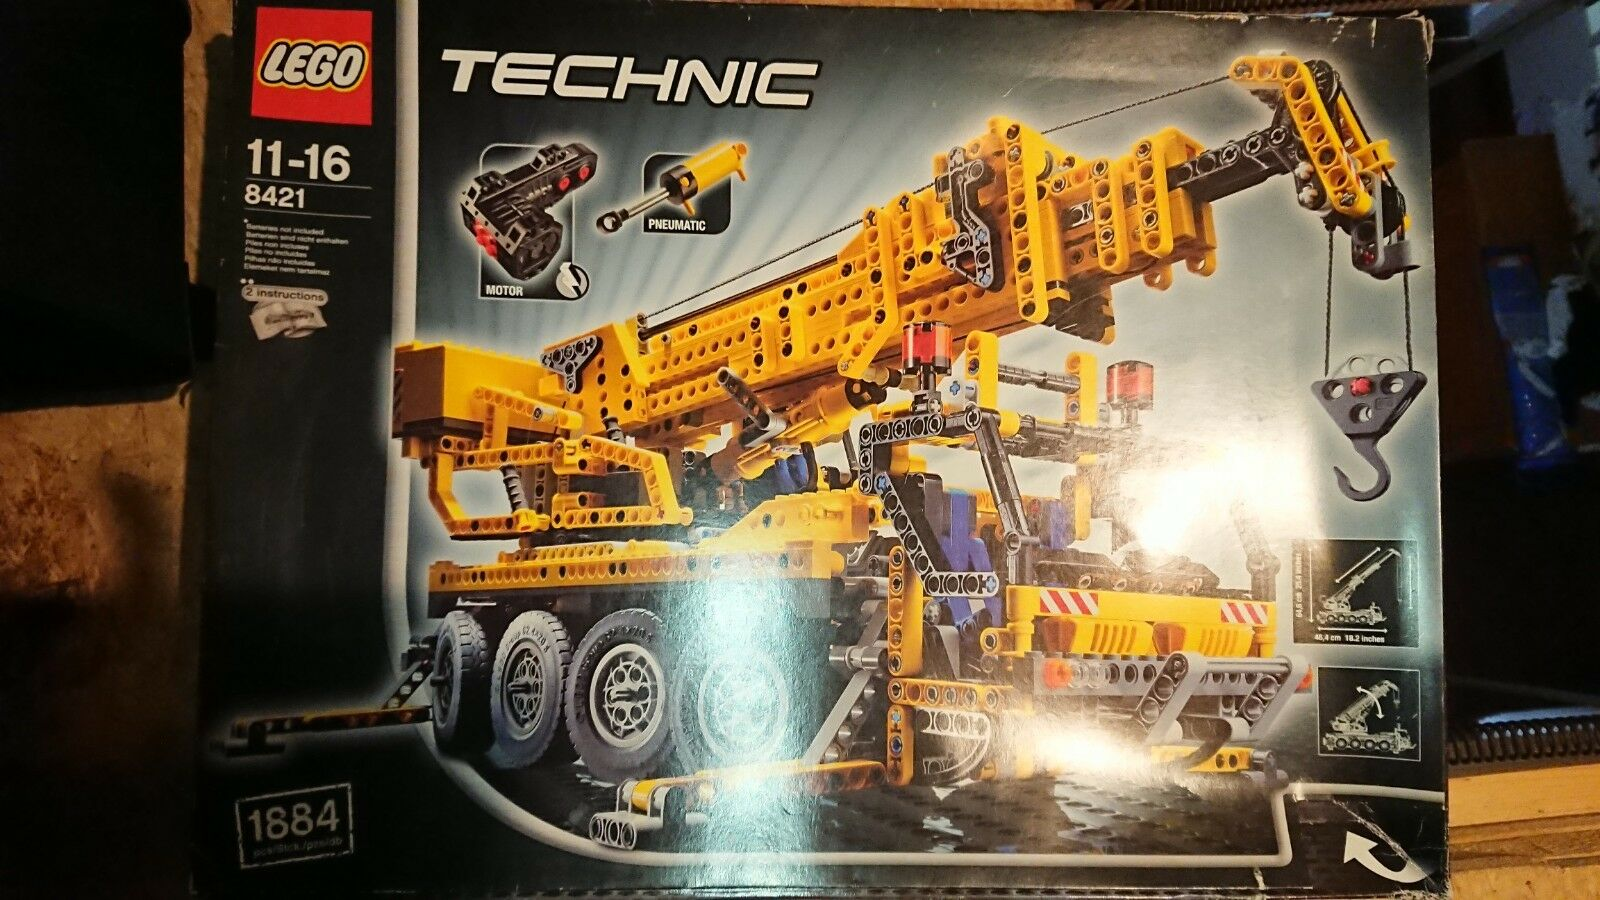 Lego Technic 8421 Motorised Mobile Crane - Boxed with Instructions 100% complete